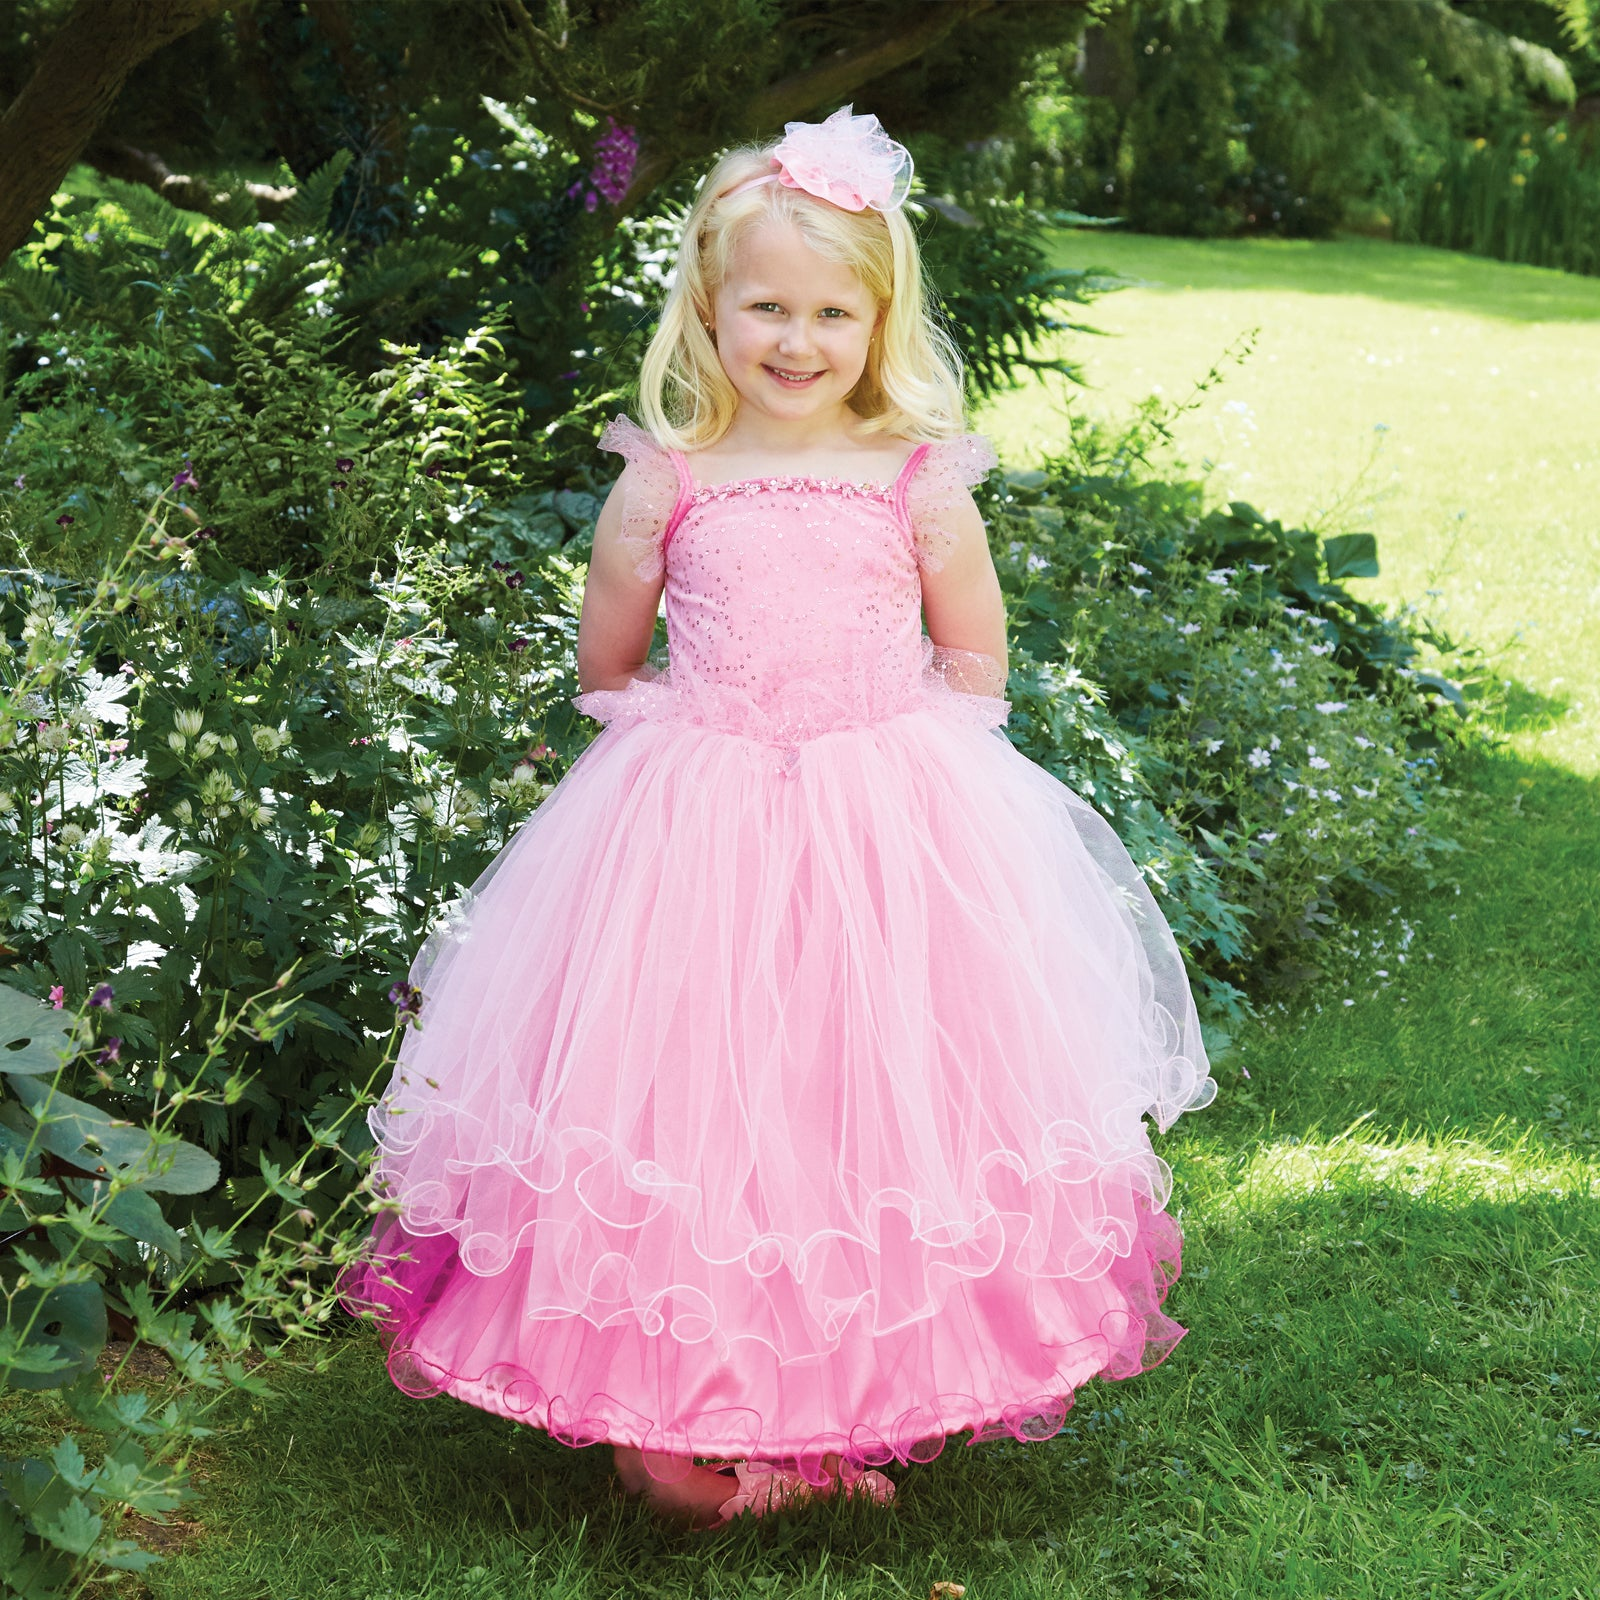 girl in a garden wearing a Pink Sweetheart Princess Dress